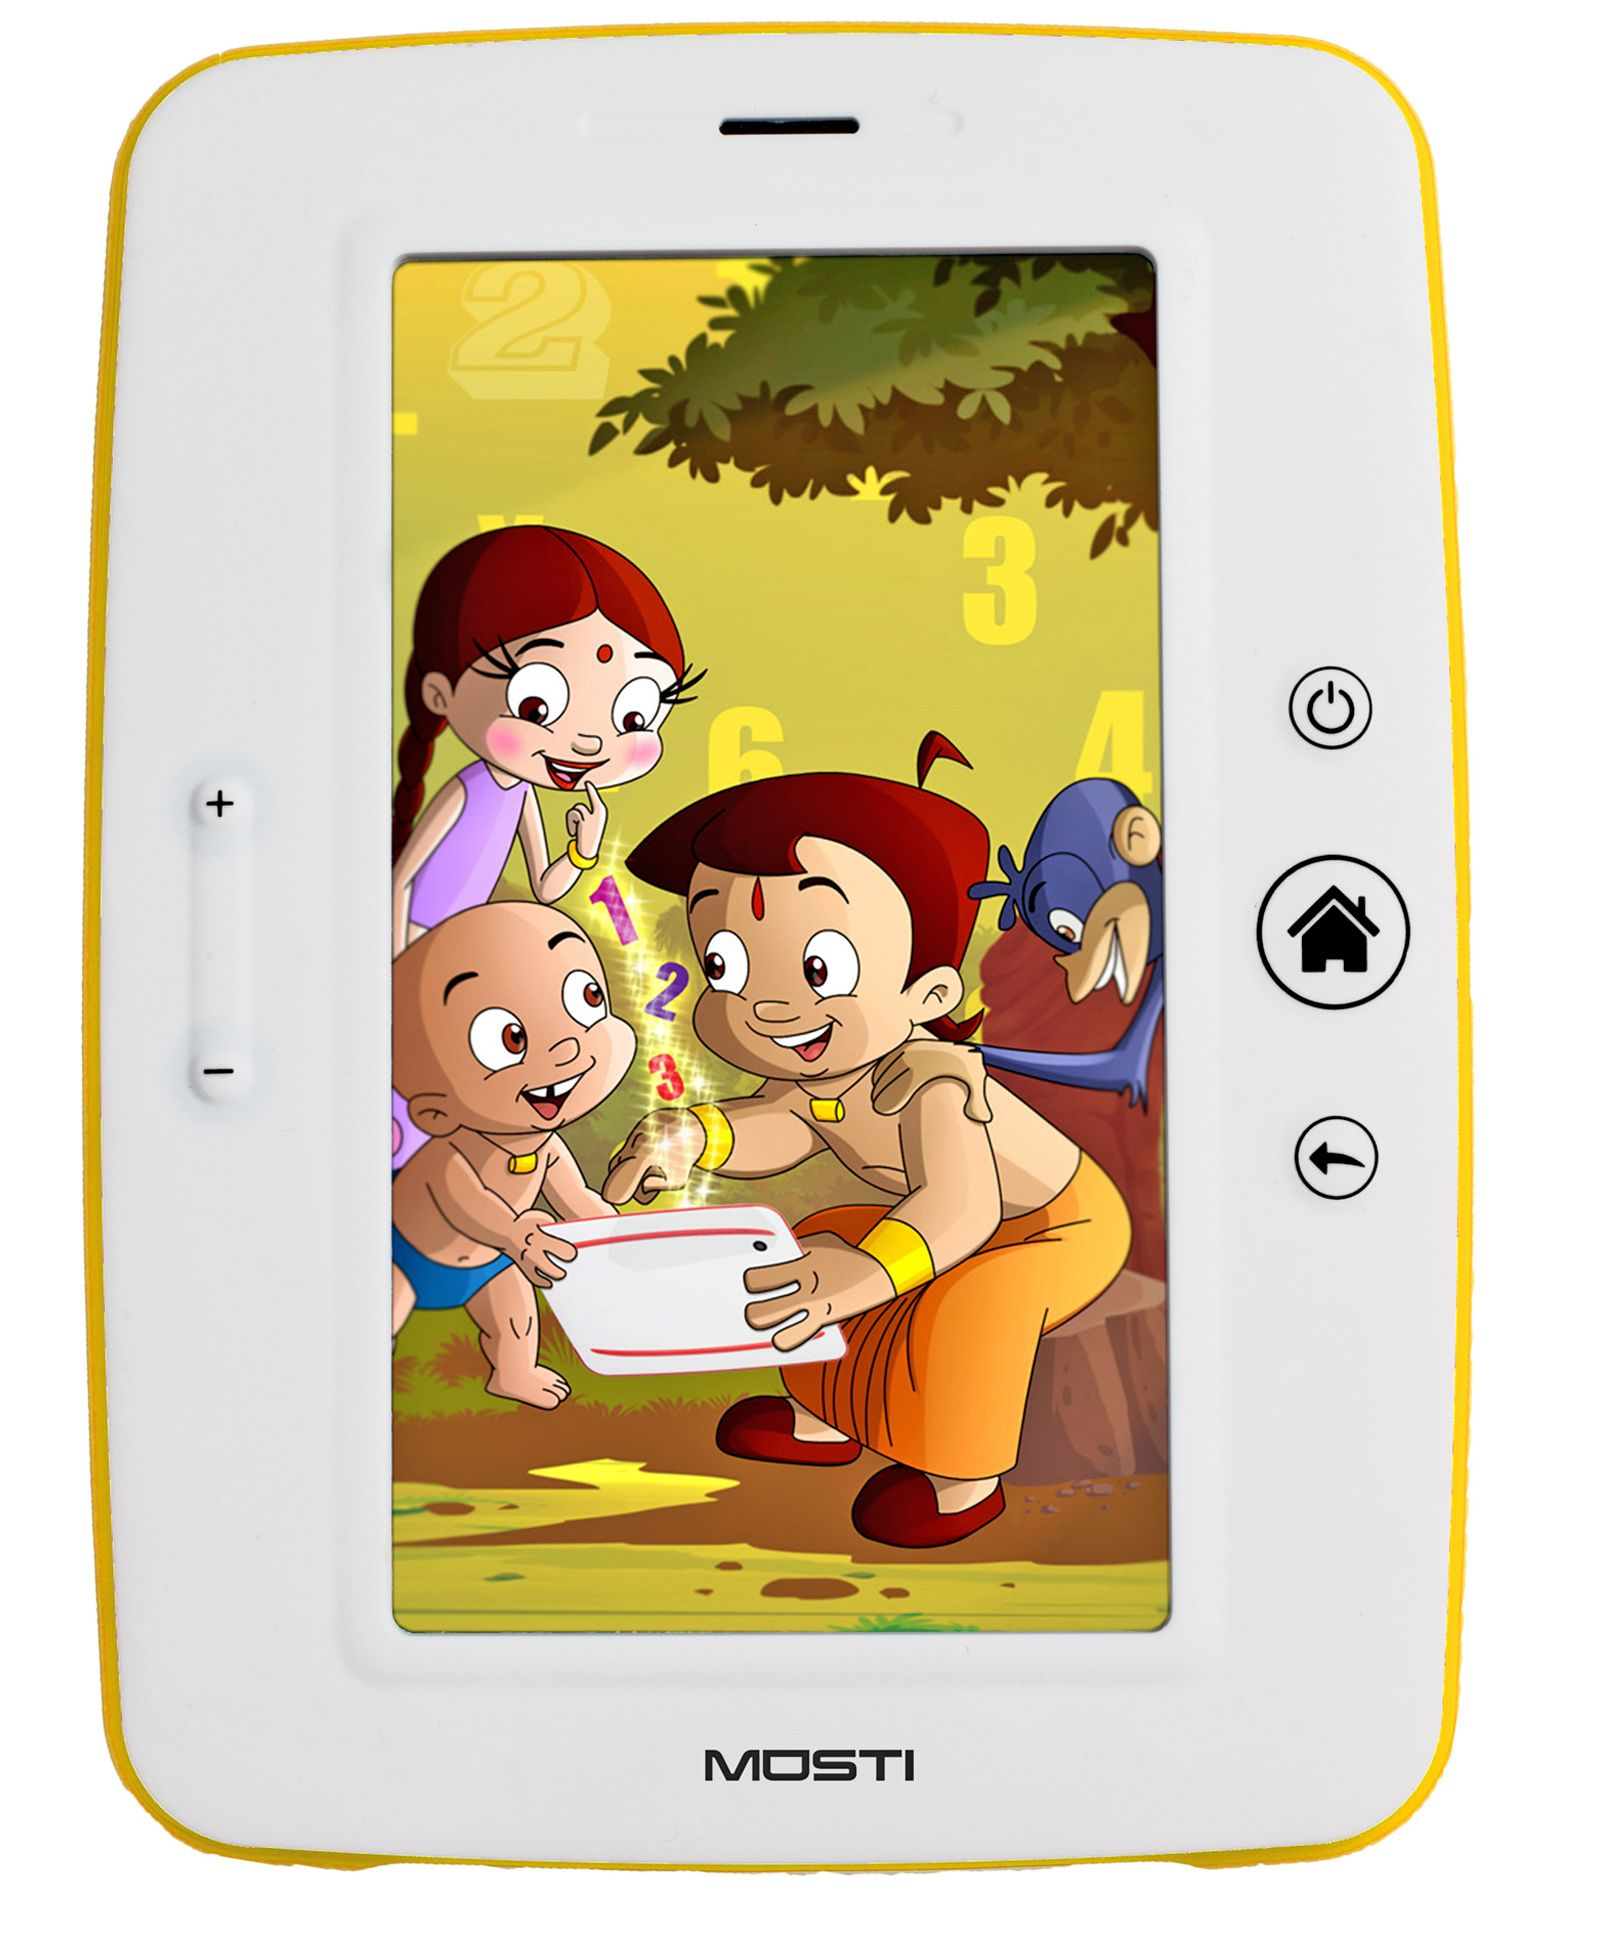 Chhota bheem kids Eductional Android Tablet Android